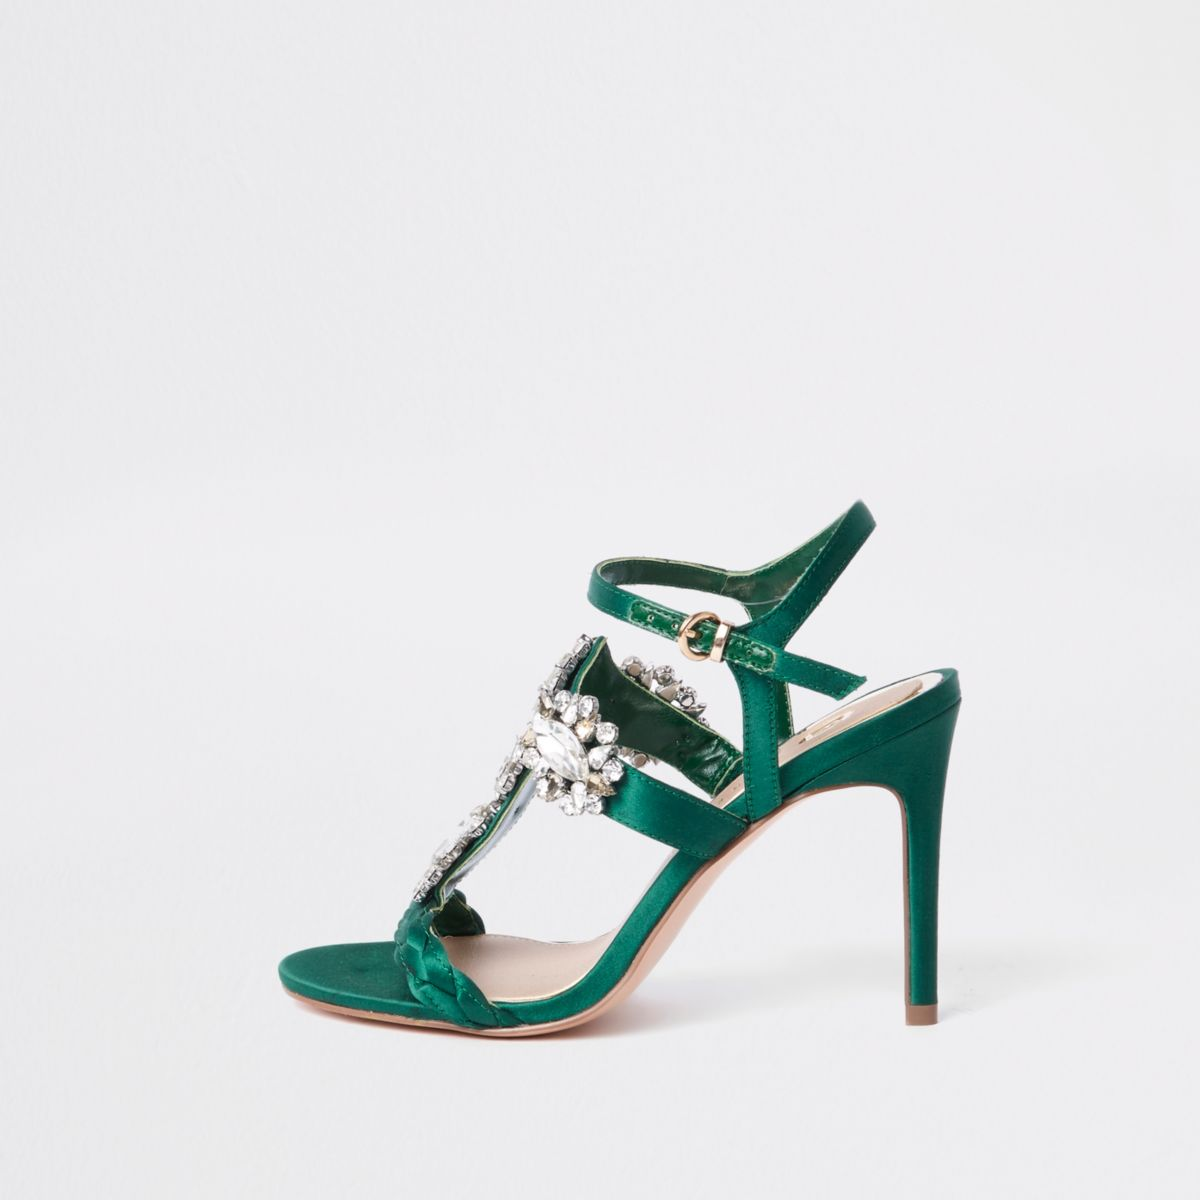 Green barely there jewel embellished sandals